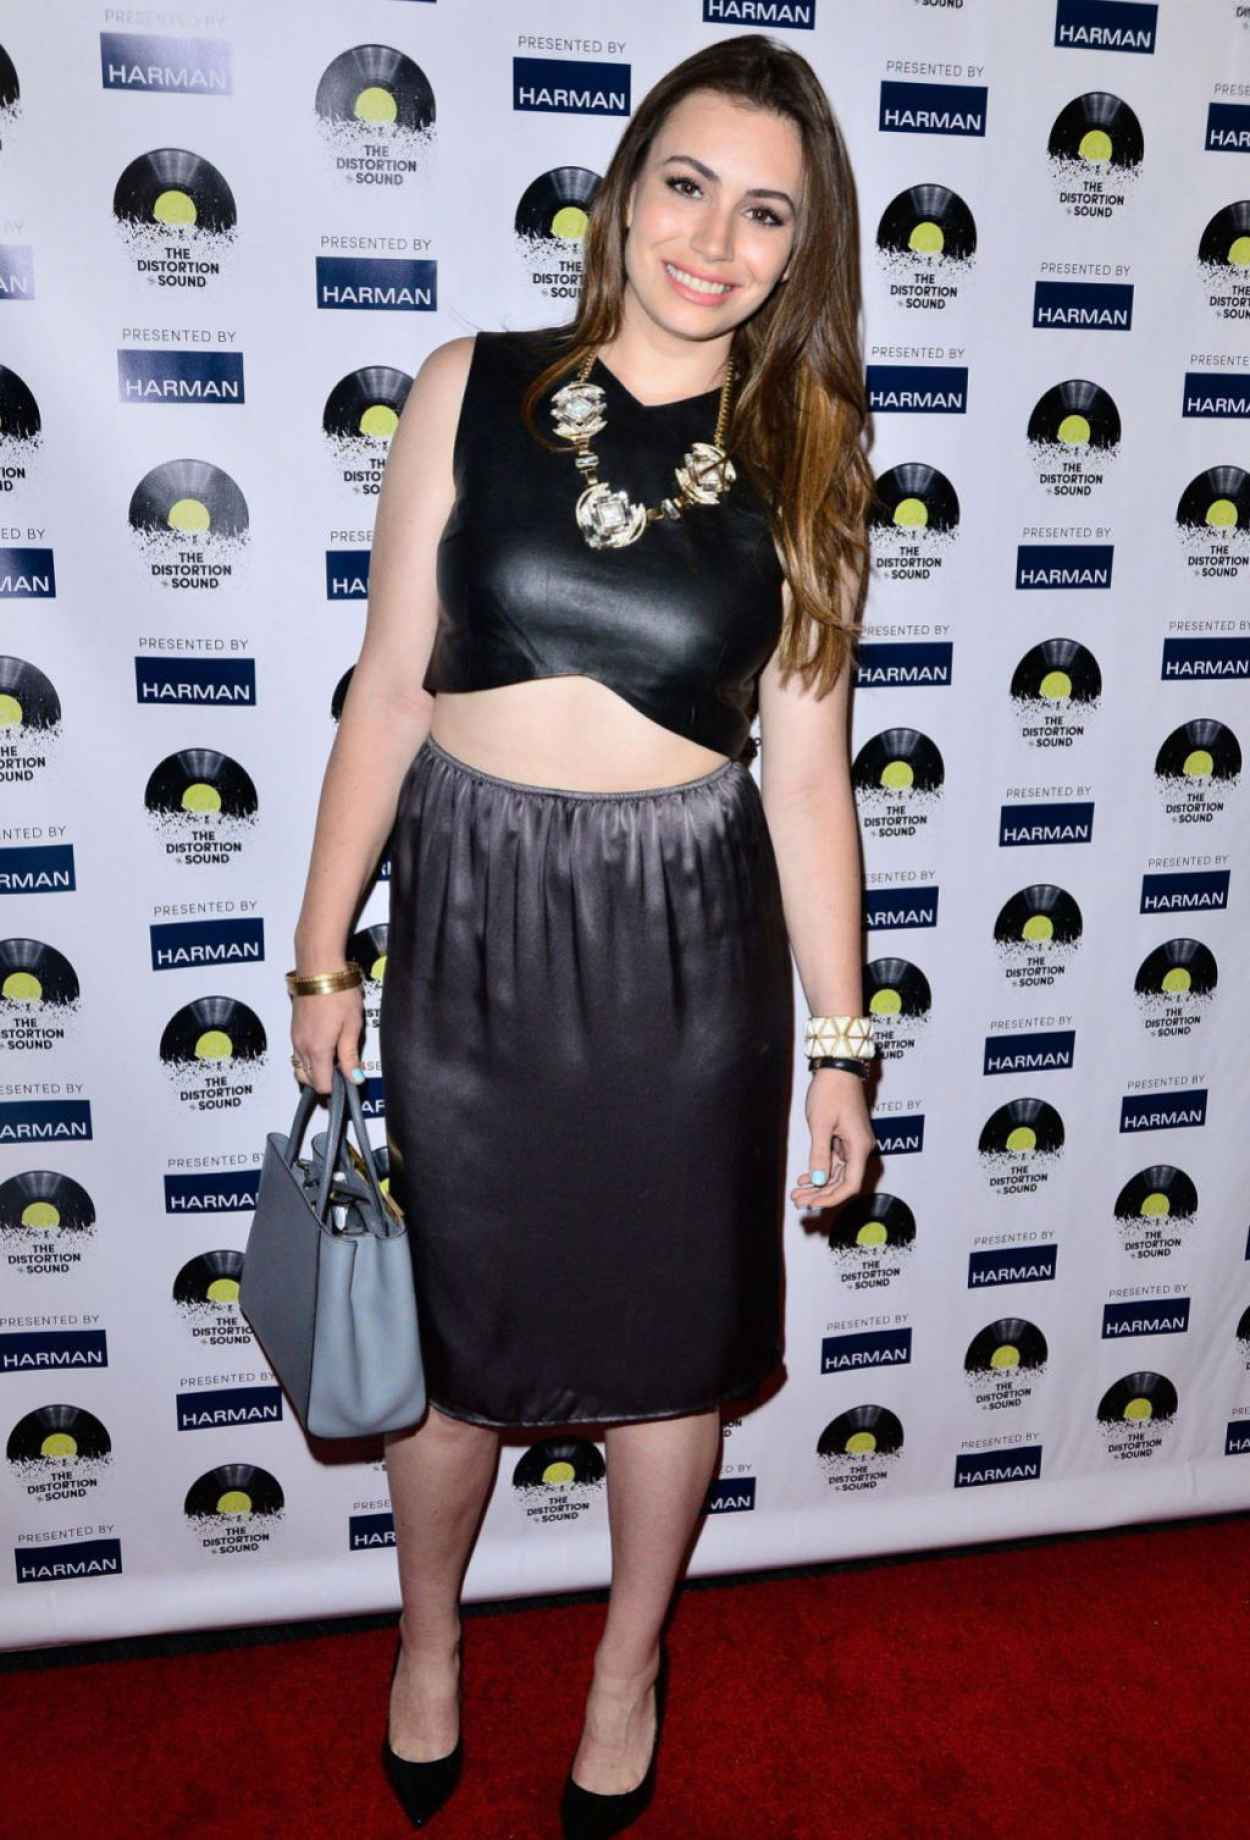 Sophie Simmons - -The Distortion of Sound- Premiere in Los Angeles-1